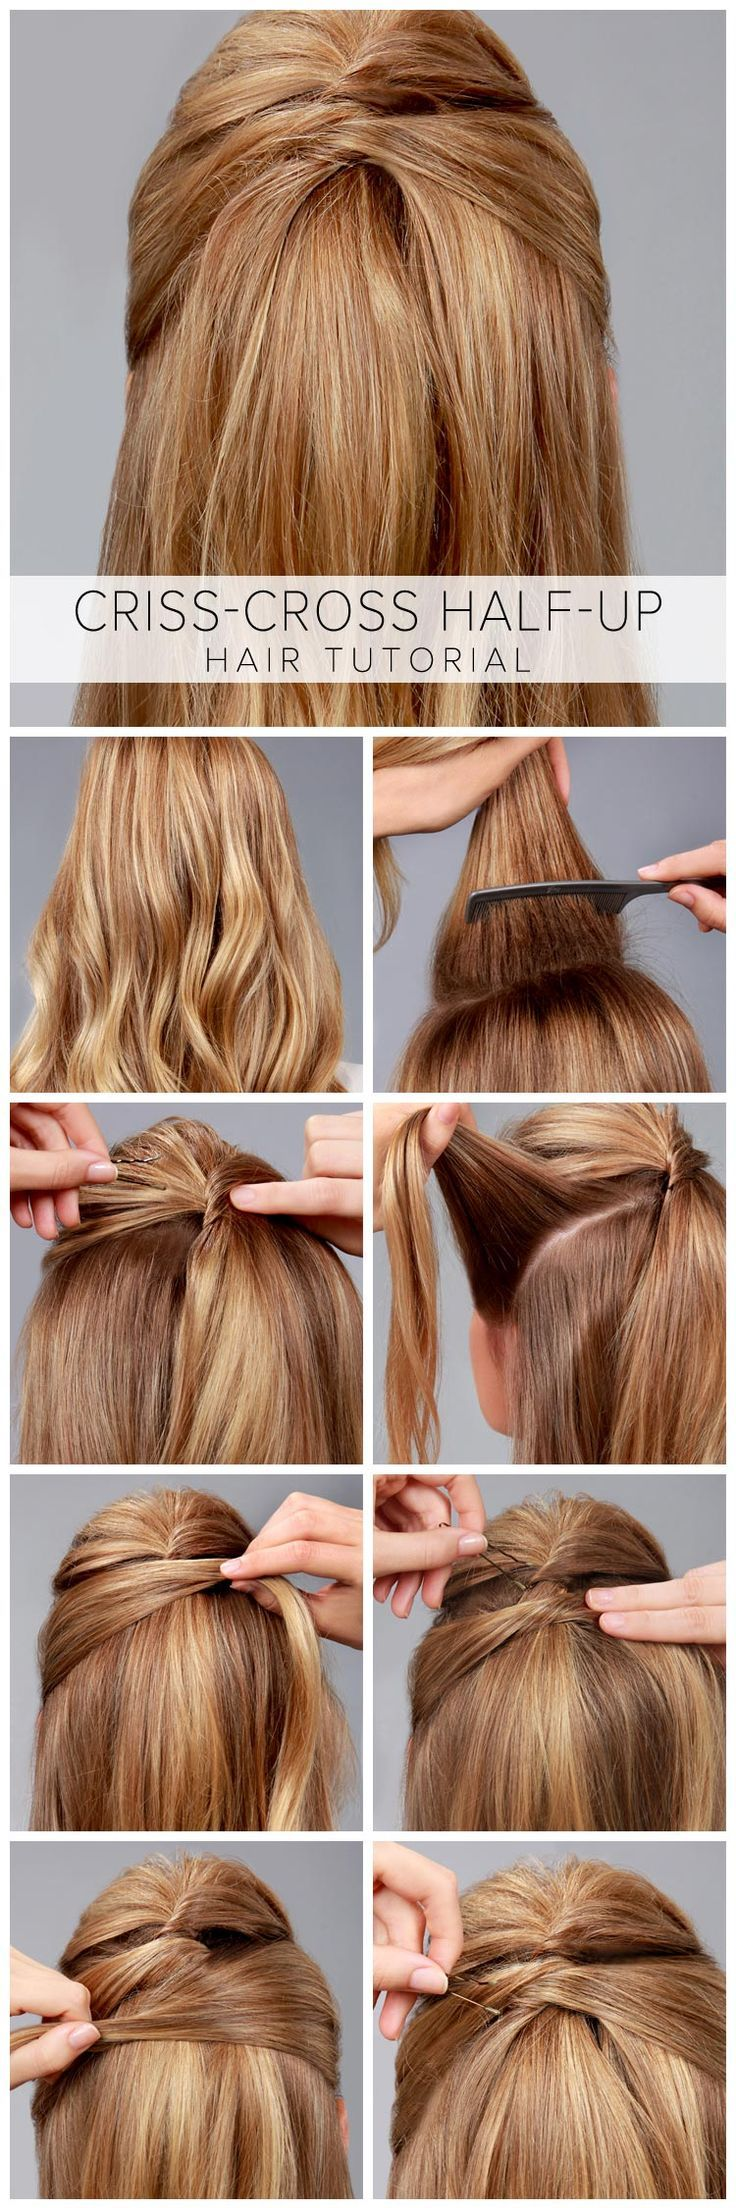 cool 25 Five-Minute Or Less Hairstyles That Will Save You From Busy Mornings by http://www.dana-haircuts.xyz/hair-tutorials/25-five-minute-or-less-hairstyles-that-will-save-you-from-busy-mornings/